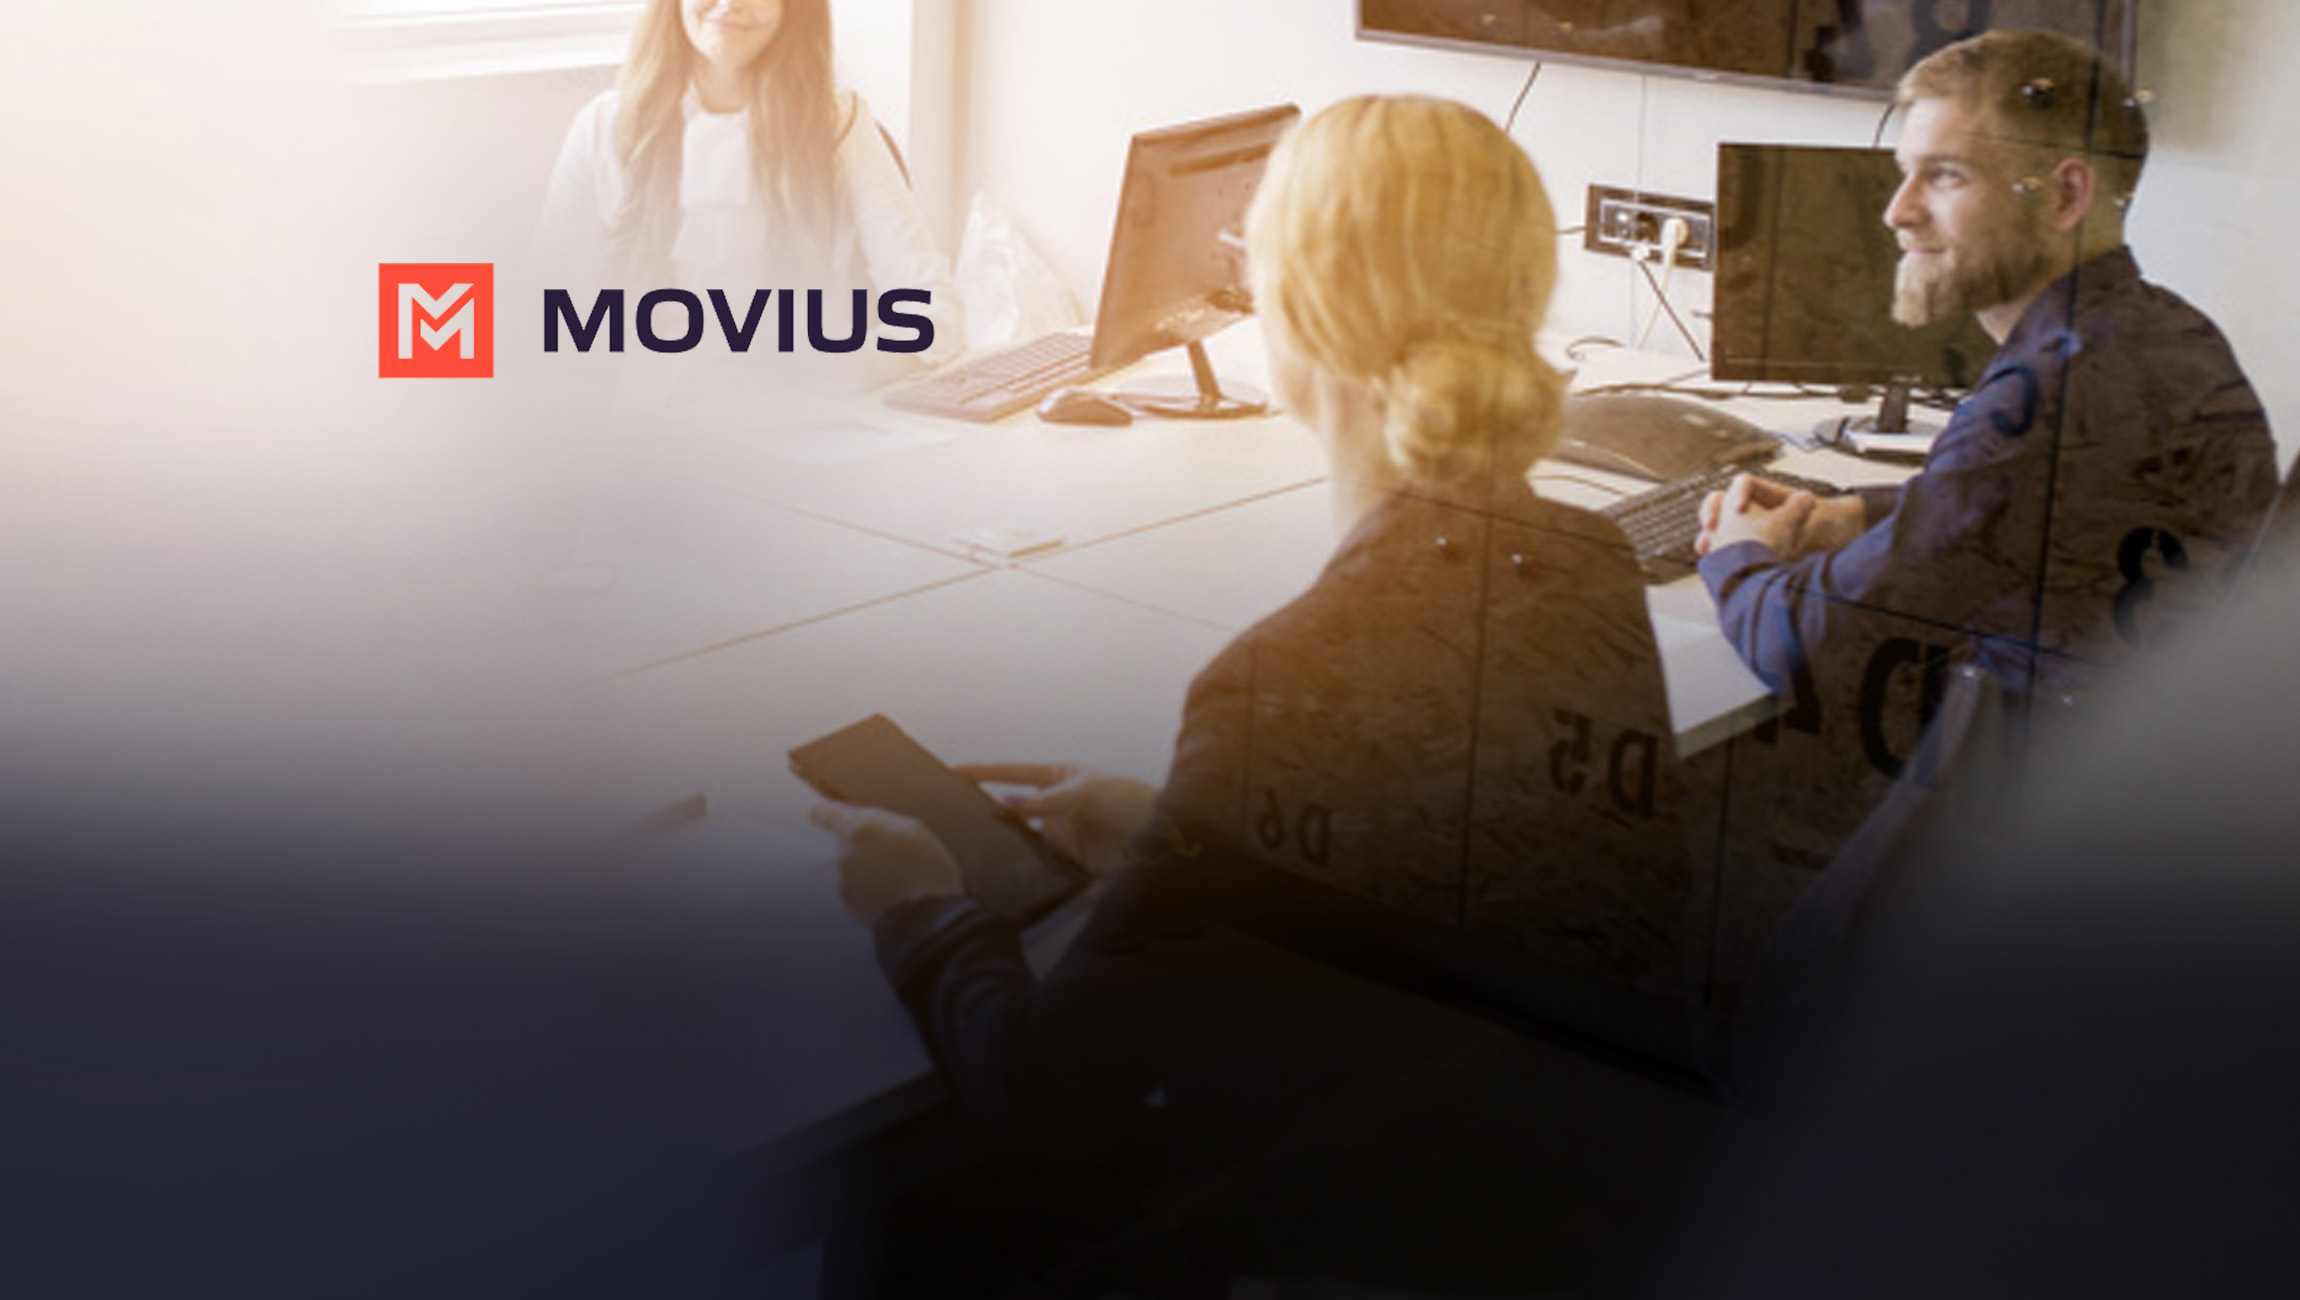 Movius WhatsApp Integration Creates First True Compliant Mobile Unified Communications Solution